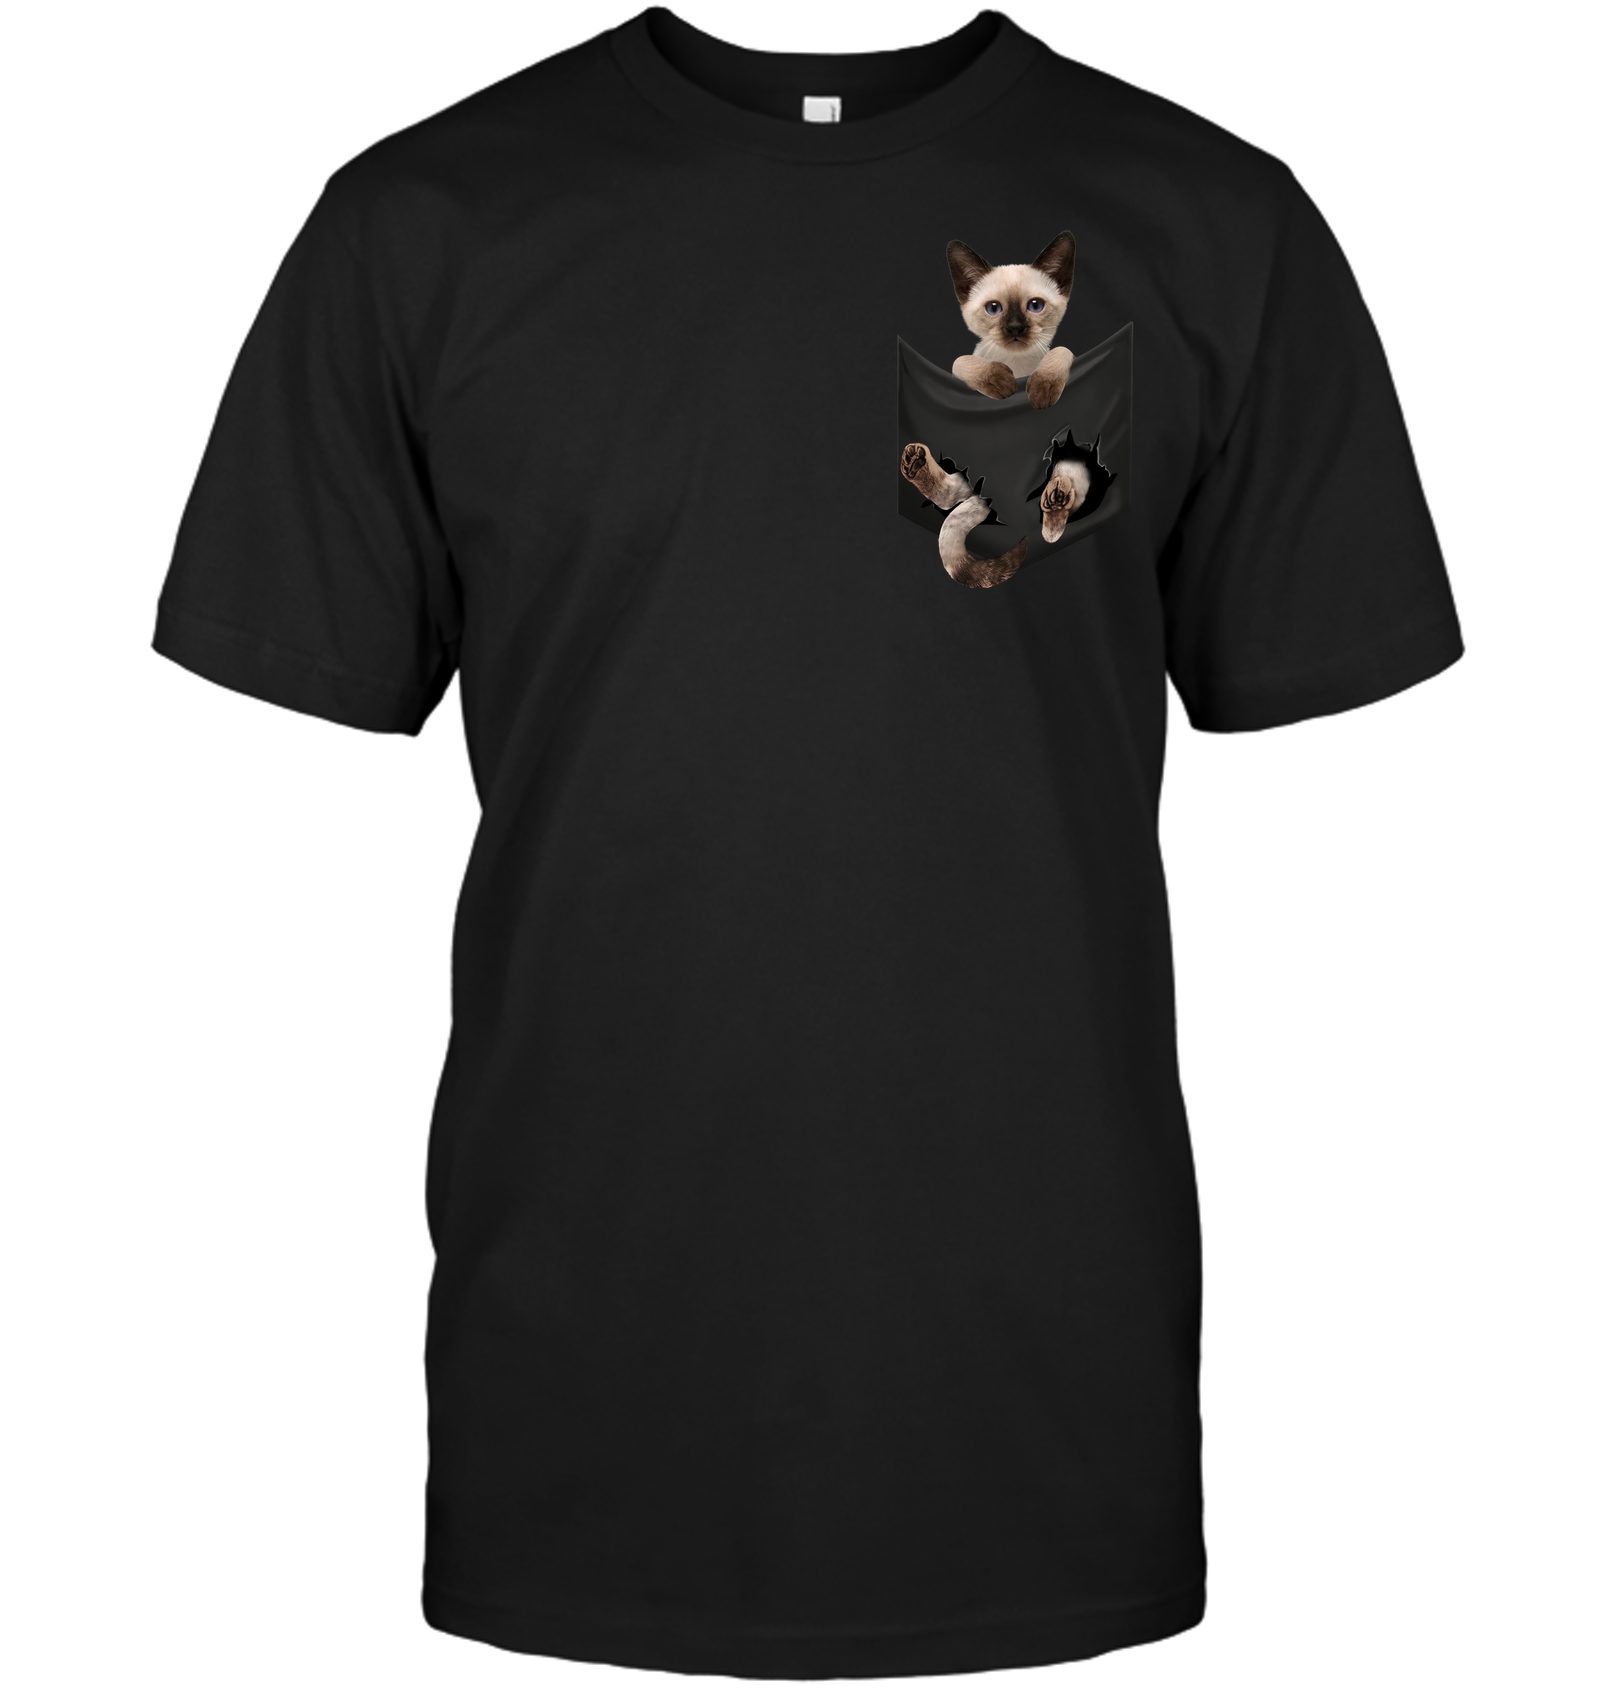 Siamese Cat In Pocket T shirt